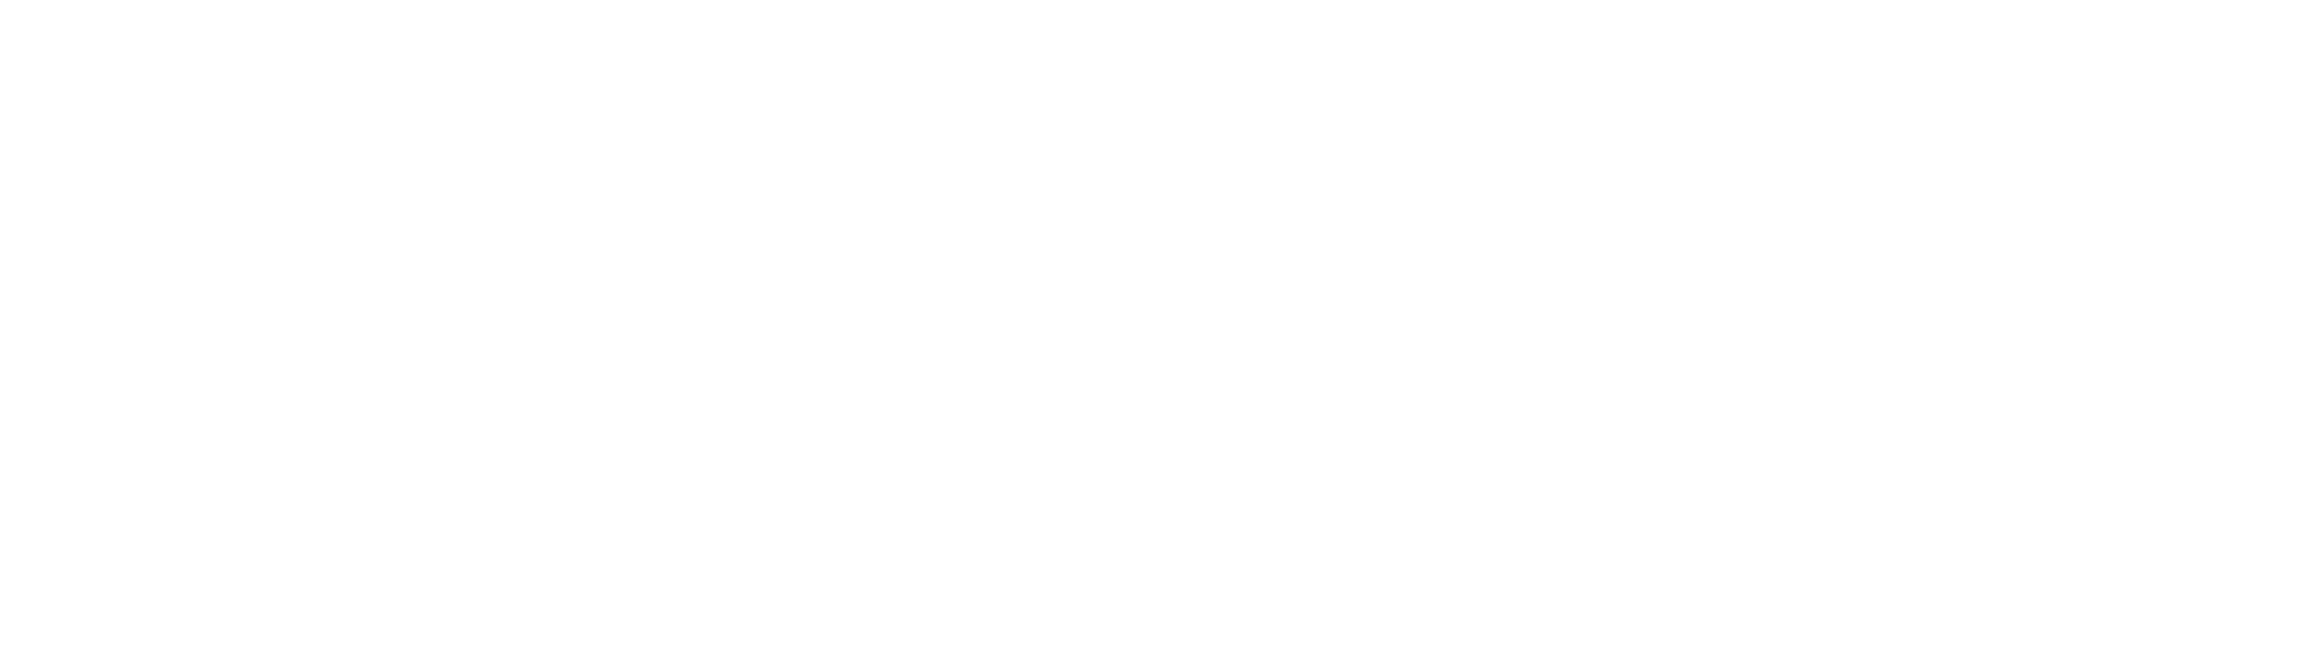 l'opera international magazine